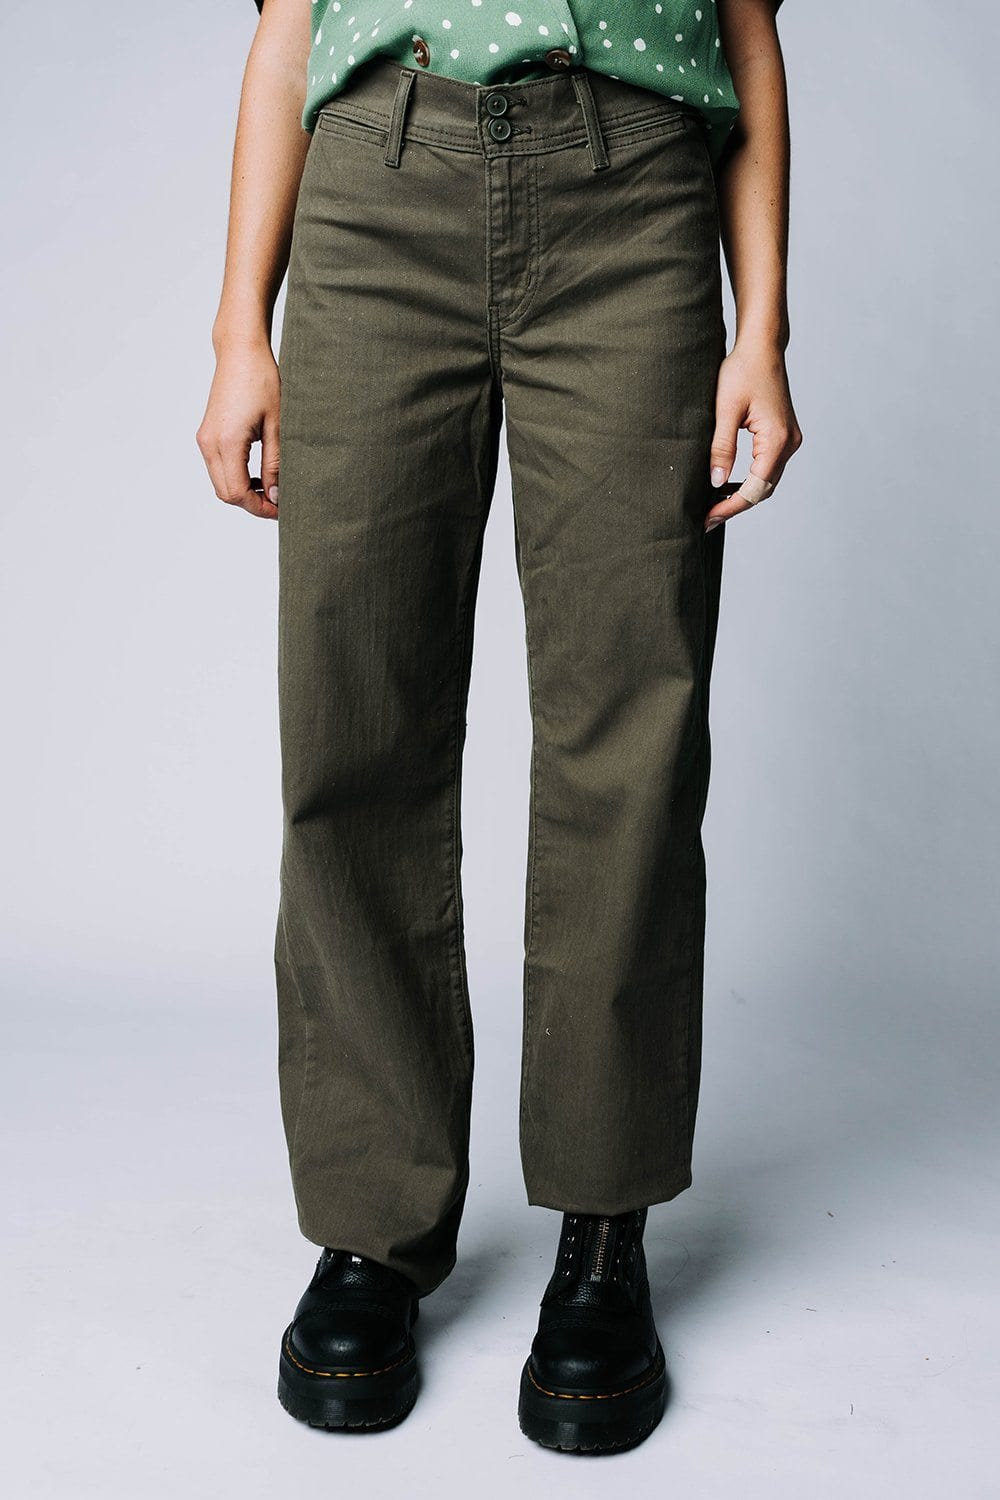 Levi's CL Utility Wide LB Jean in Olive Night Herringbone Bottom Levi's Clad and Cloth